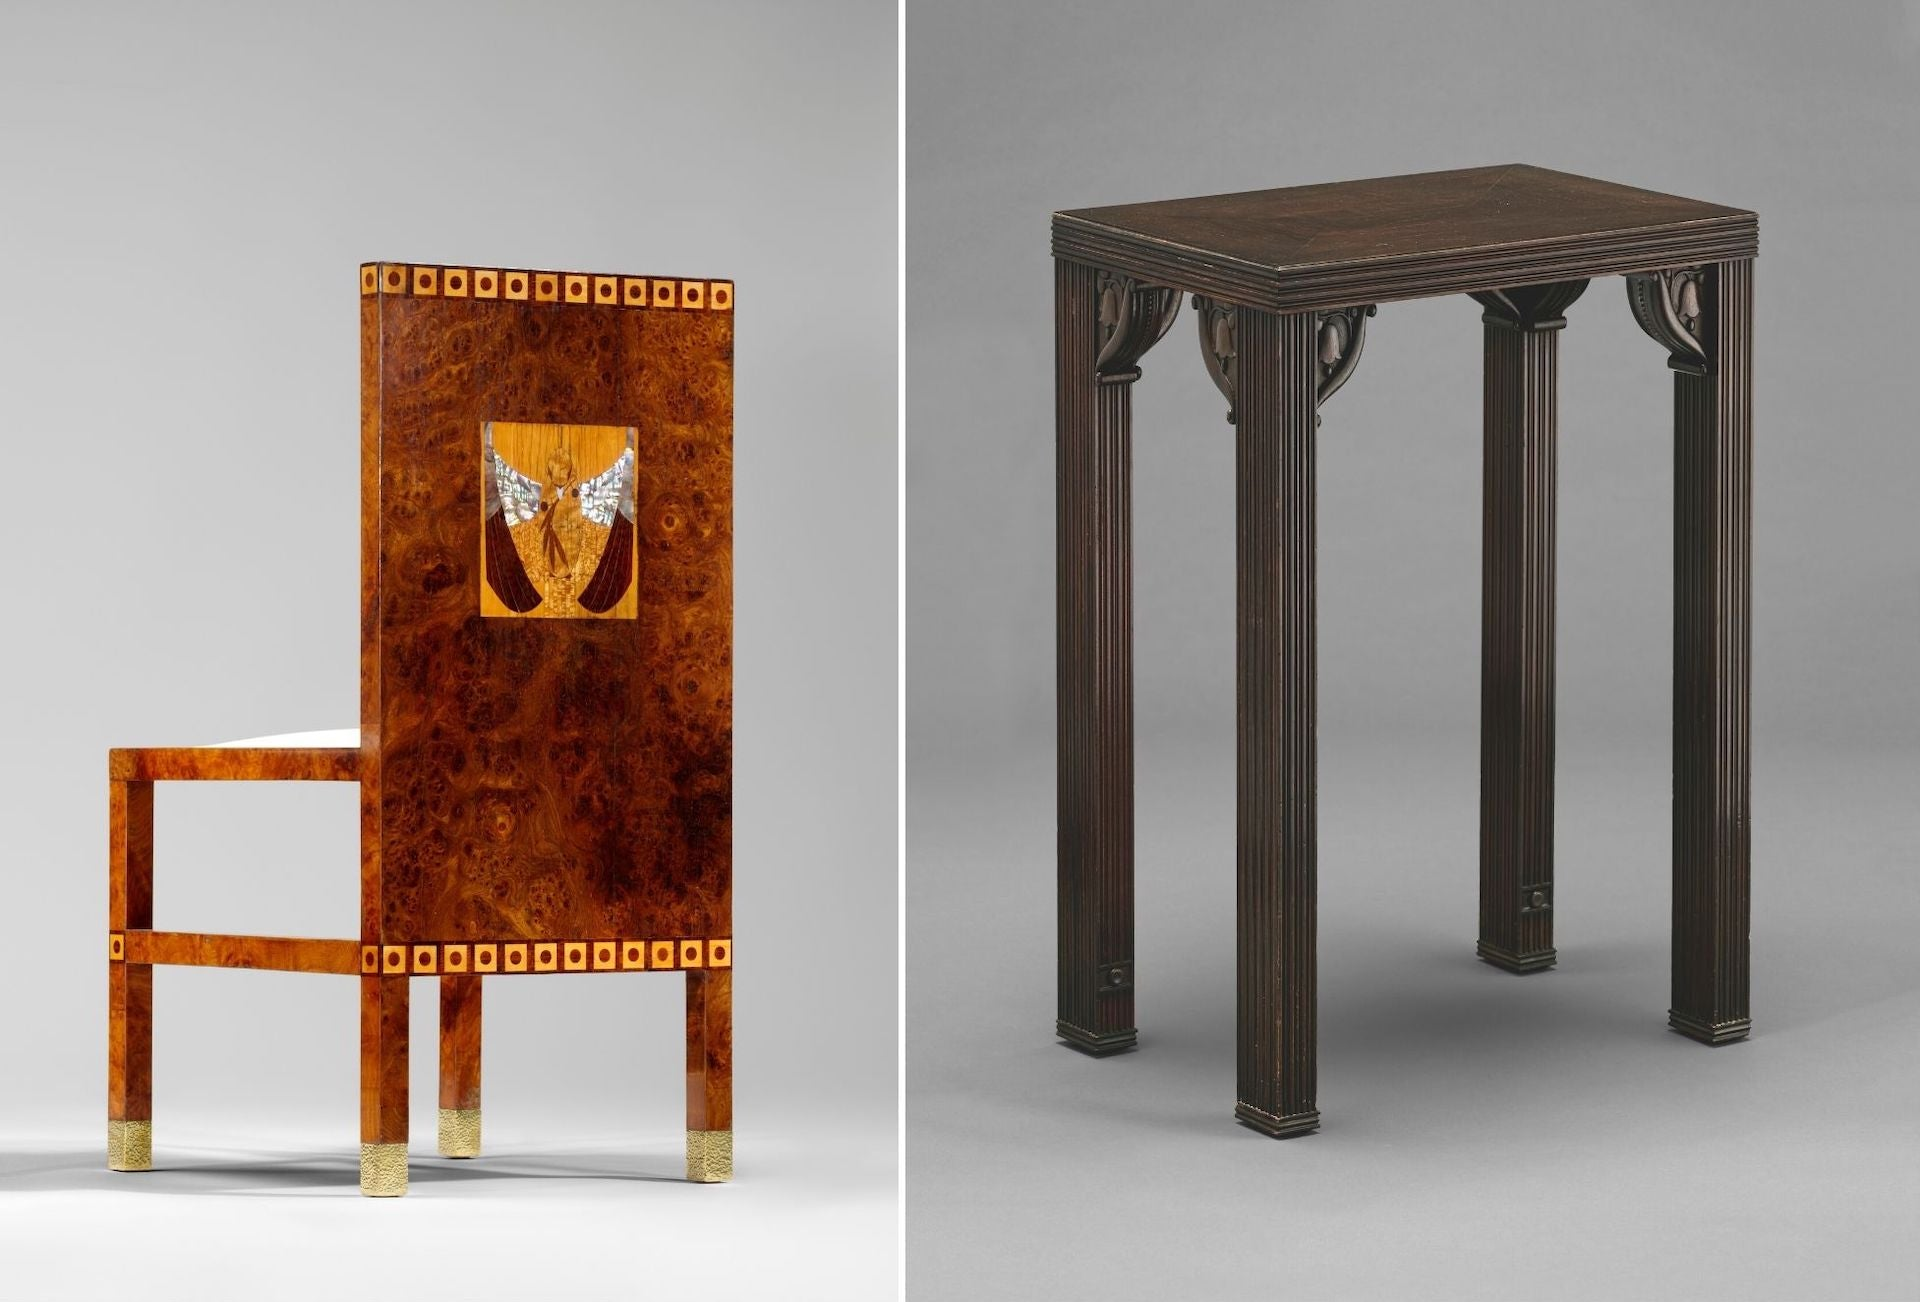 Side Chair by Koloman Moser for  Dr. Hans and Gerta Eisler Von Terramare, 1902-03. Side Table by Josef Hoffmann for Otto and Madä Primavesi, c. 1916. Photos © Pasodoble